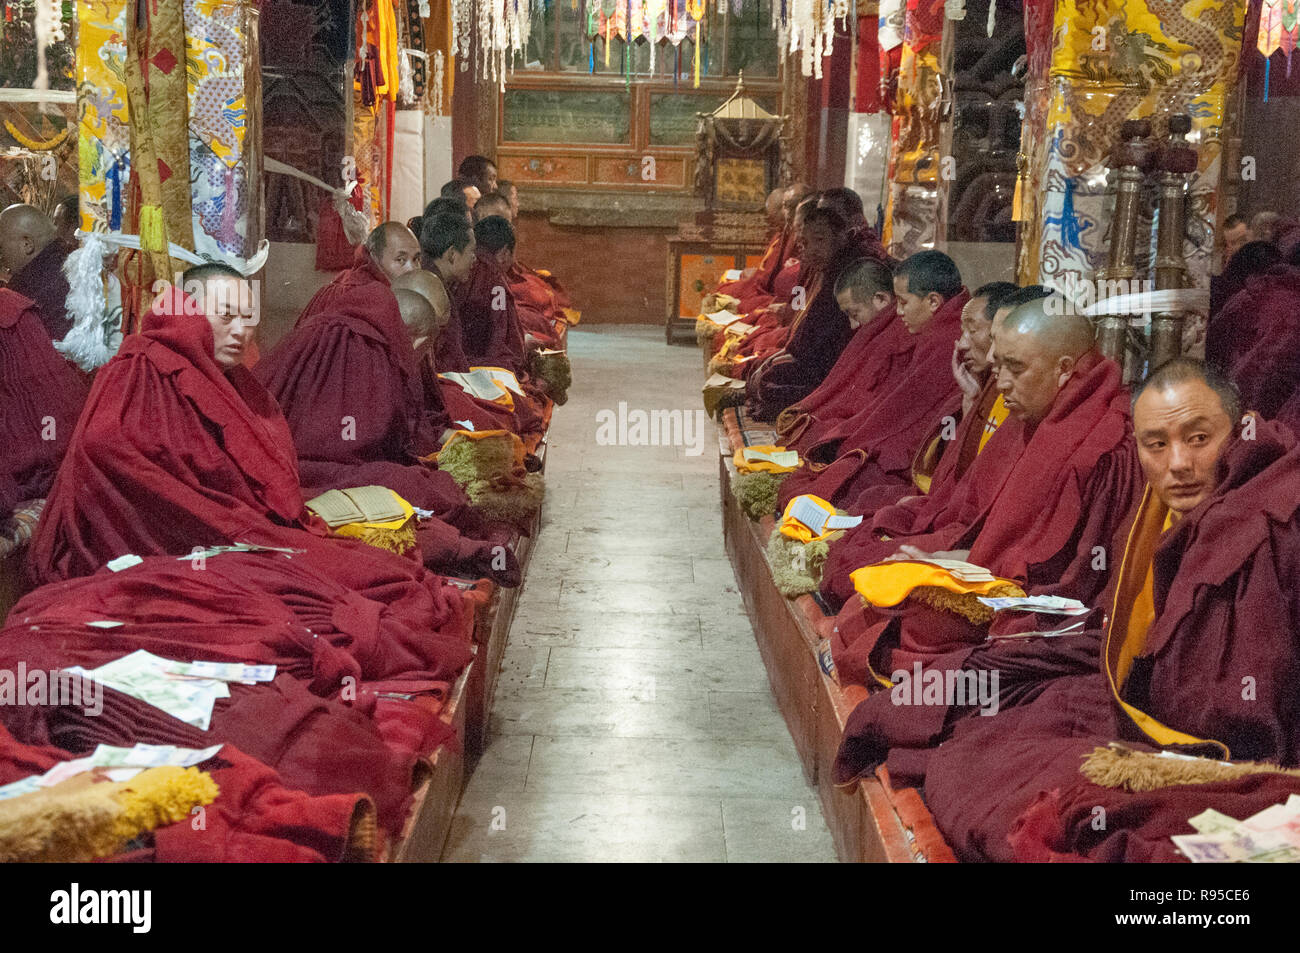 Buddhist monks recite their scriptures in the main hall of Ganden Monastery, outside Lhasa, Tibet, China - Stock Image